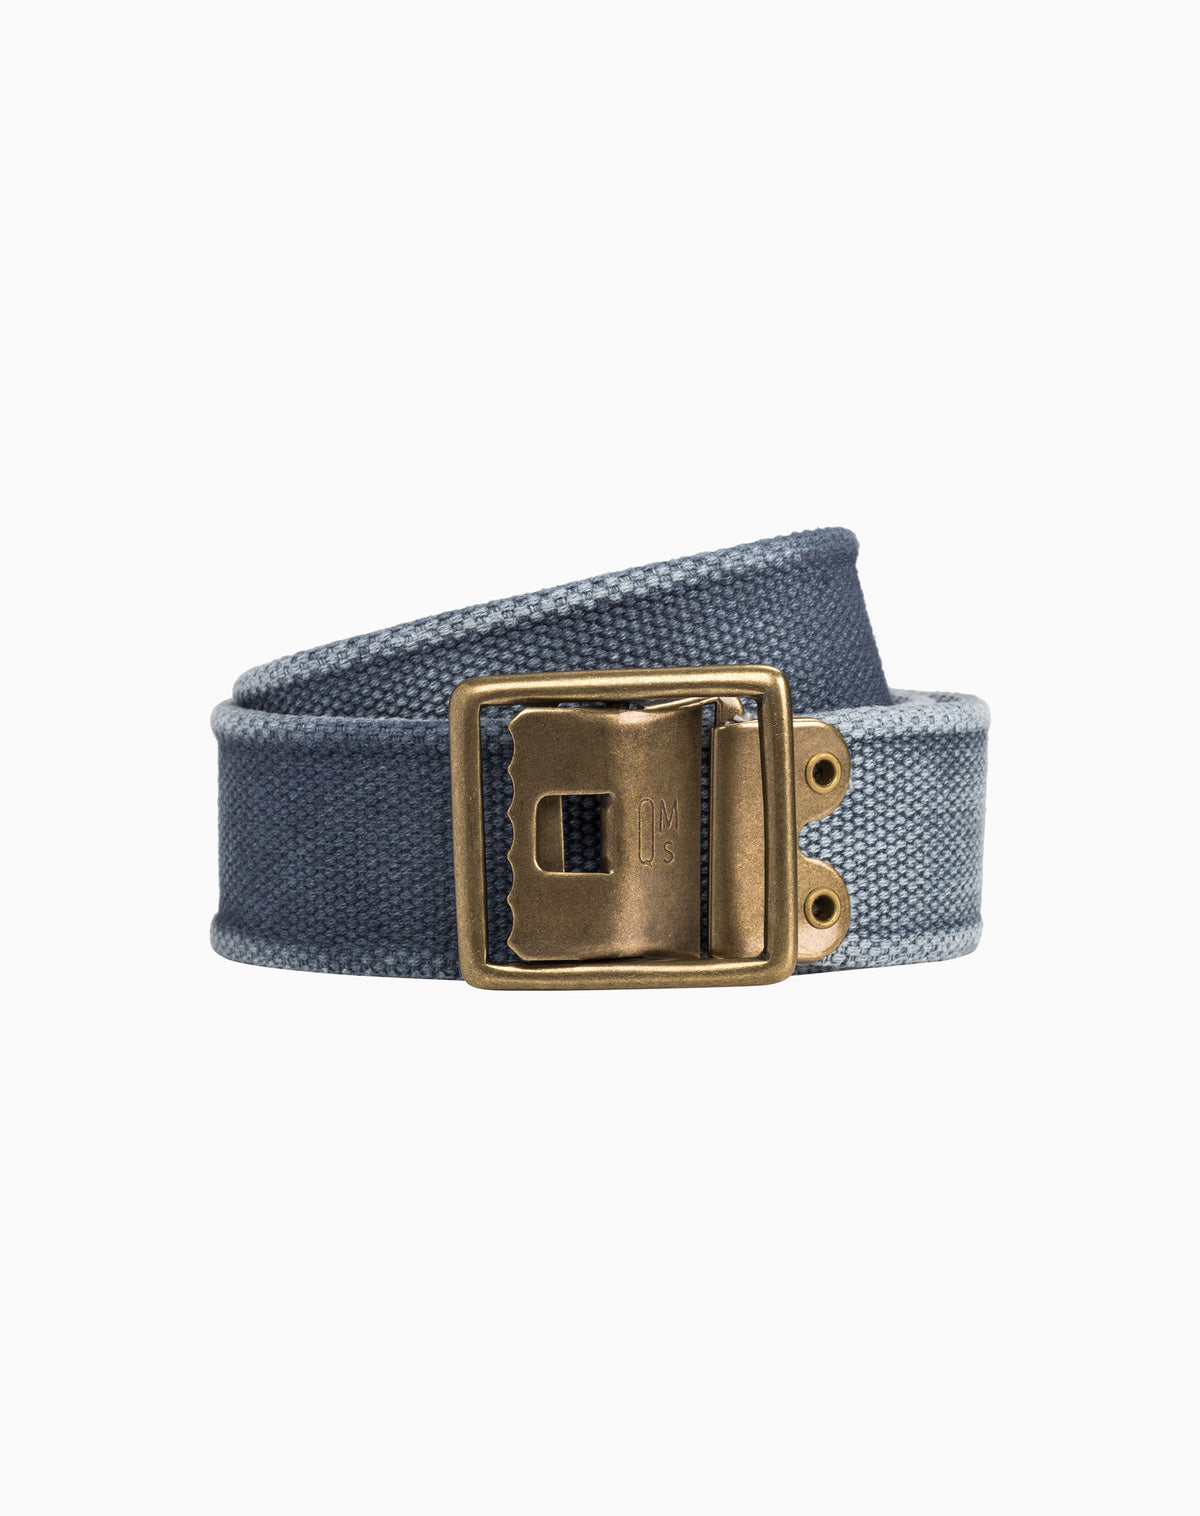 Military Belt in Blue